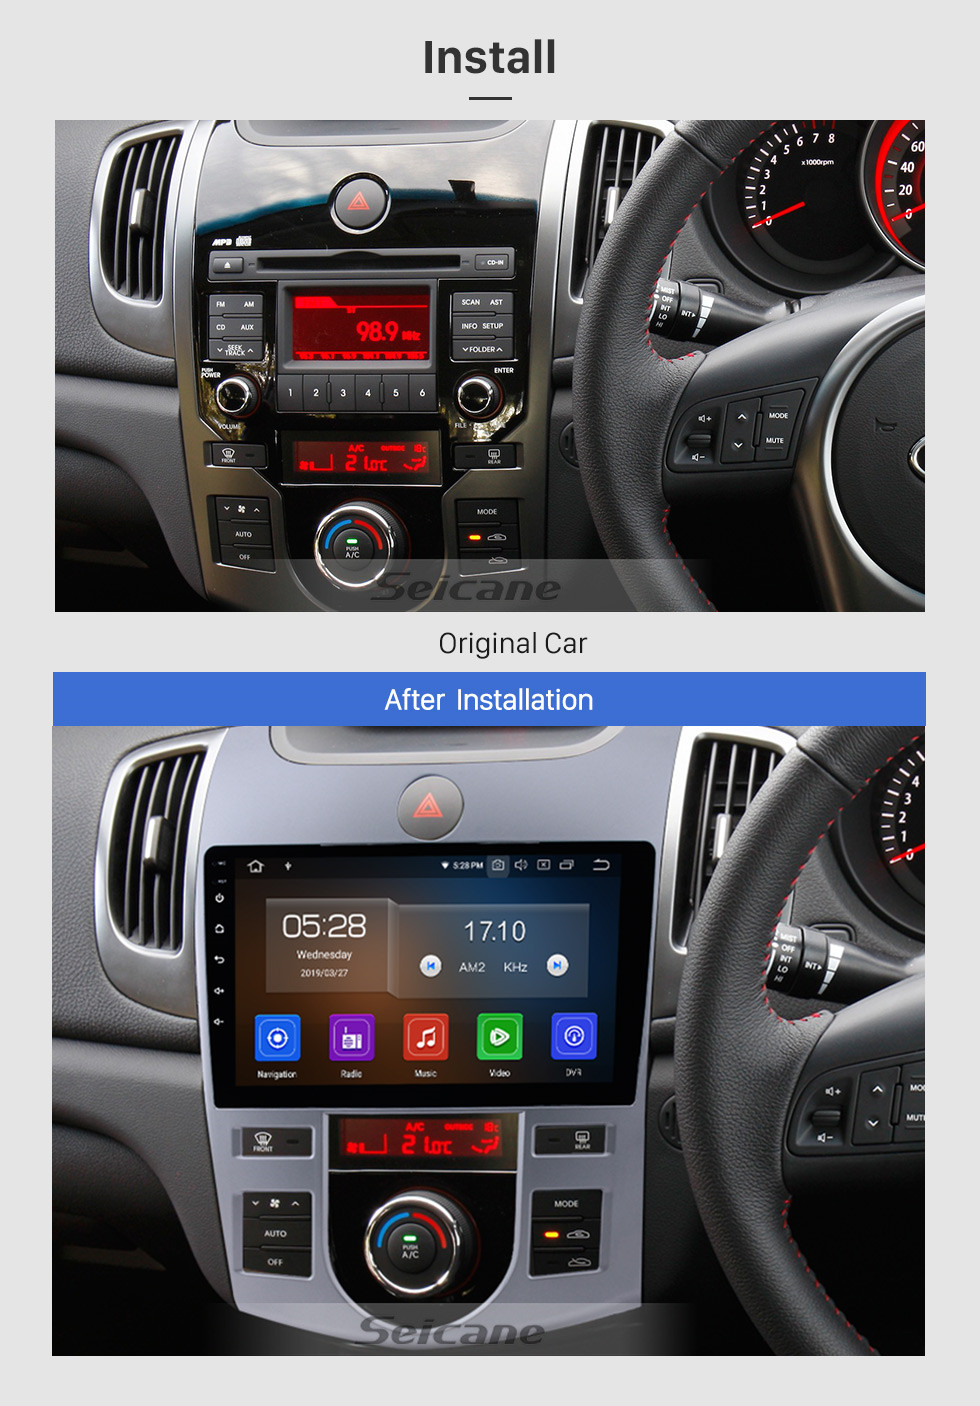 Seicane 9 inch Android 9.0 Radio DVD player navigation system for 2008-2012 KIA FORTE (AT) with Bluetooth GPS HD 1024*600 touch screen OBD2 DVR Rearview camera TV 1080P Video 3G WIFI Steering Wheel Control USB Mirror link